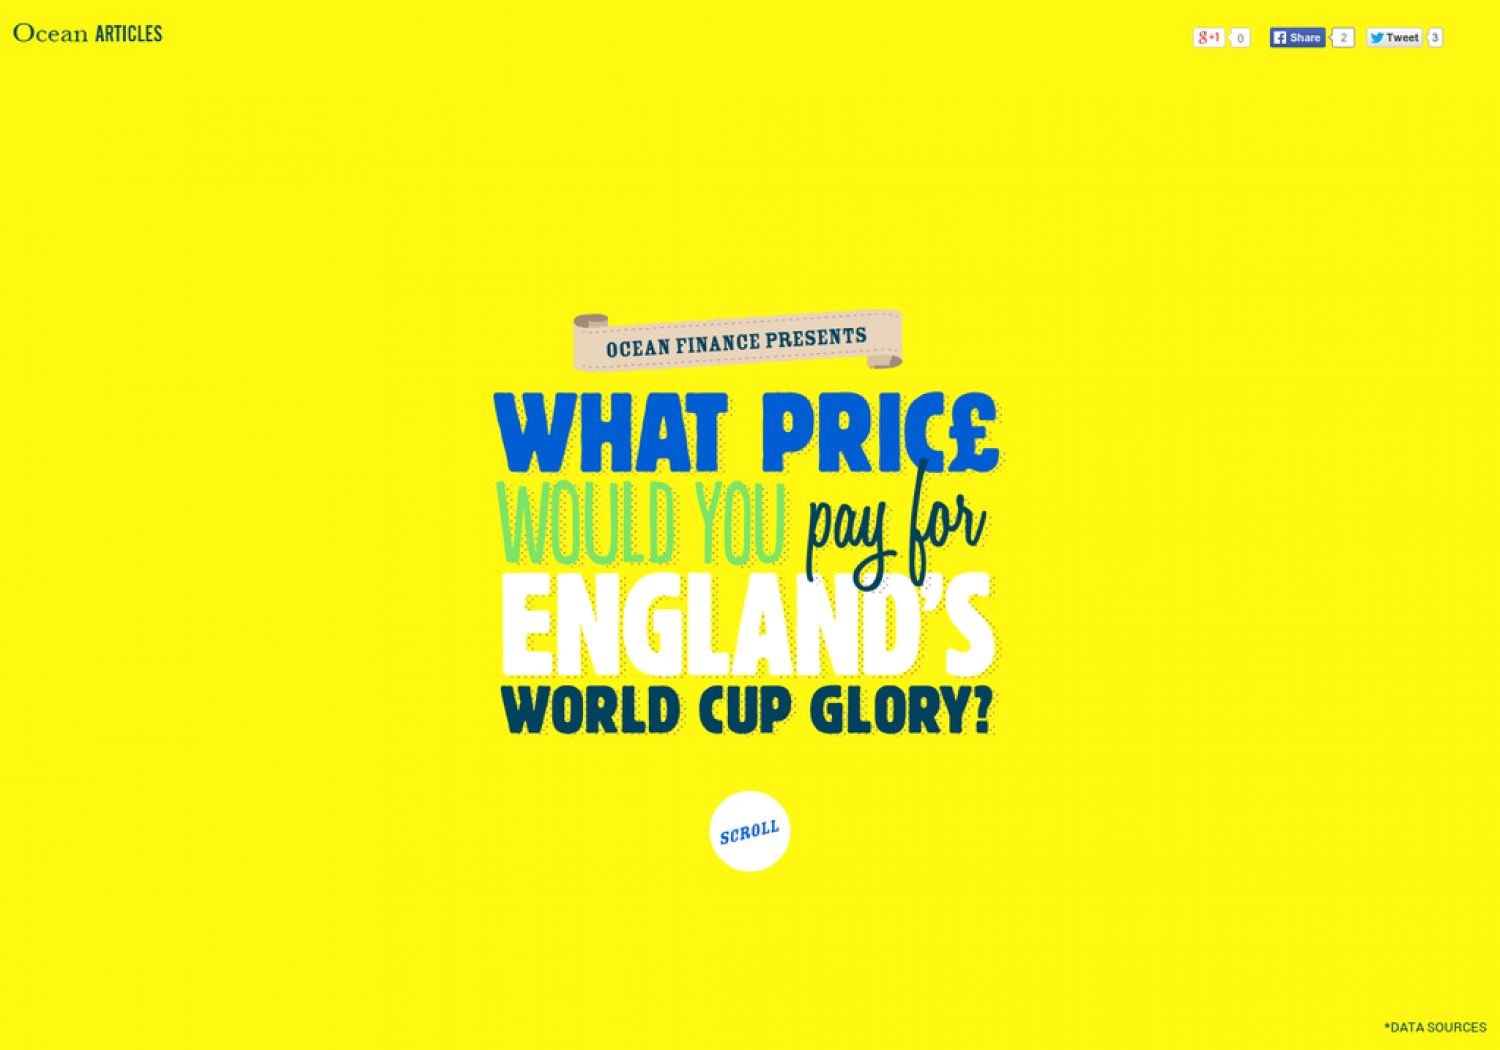 What Price Would You Pay For England's World Cup Glory? Infographic